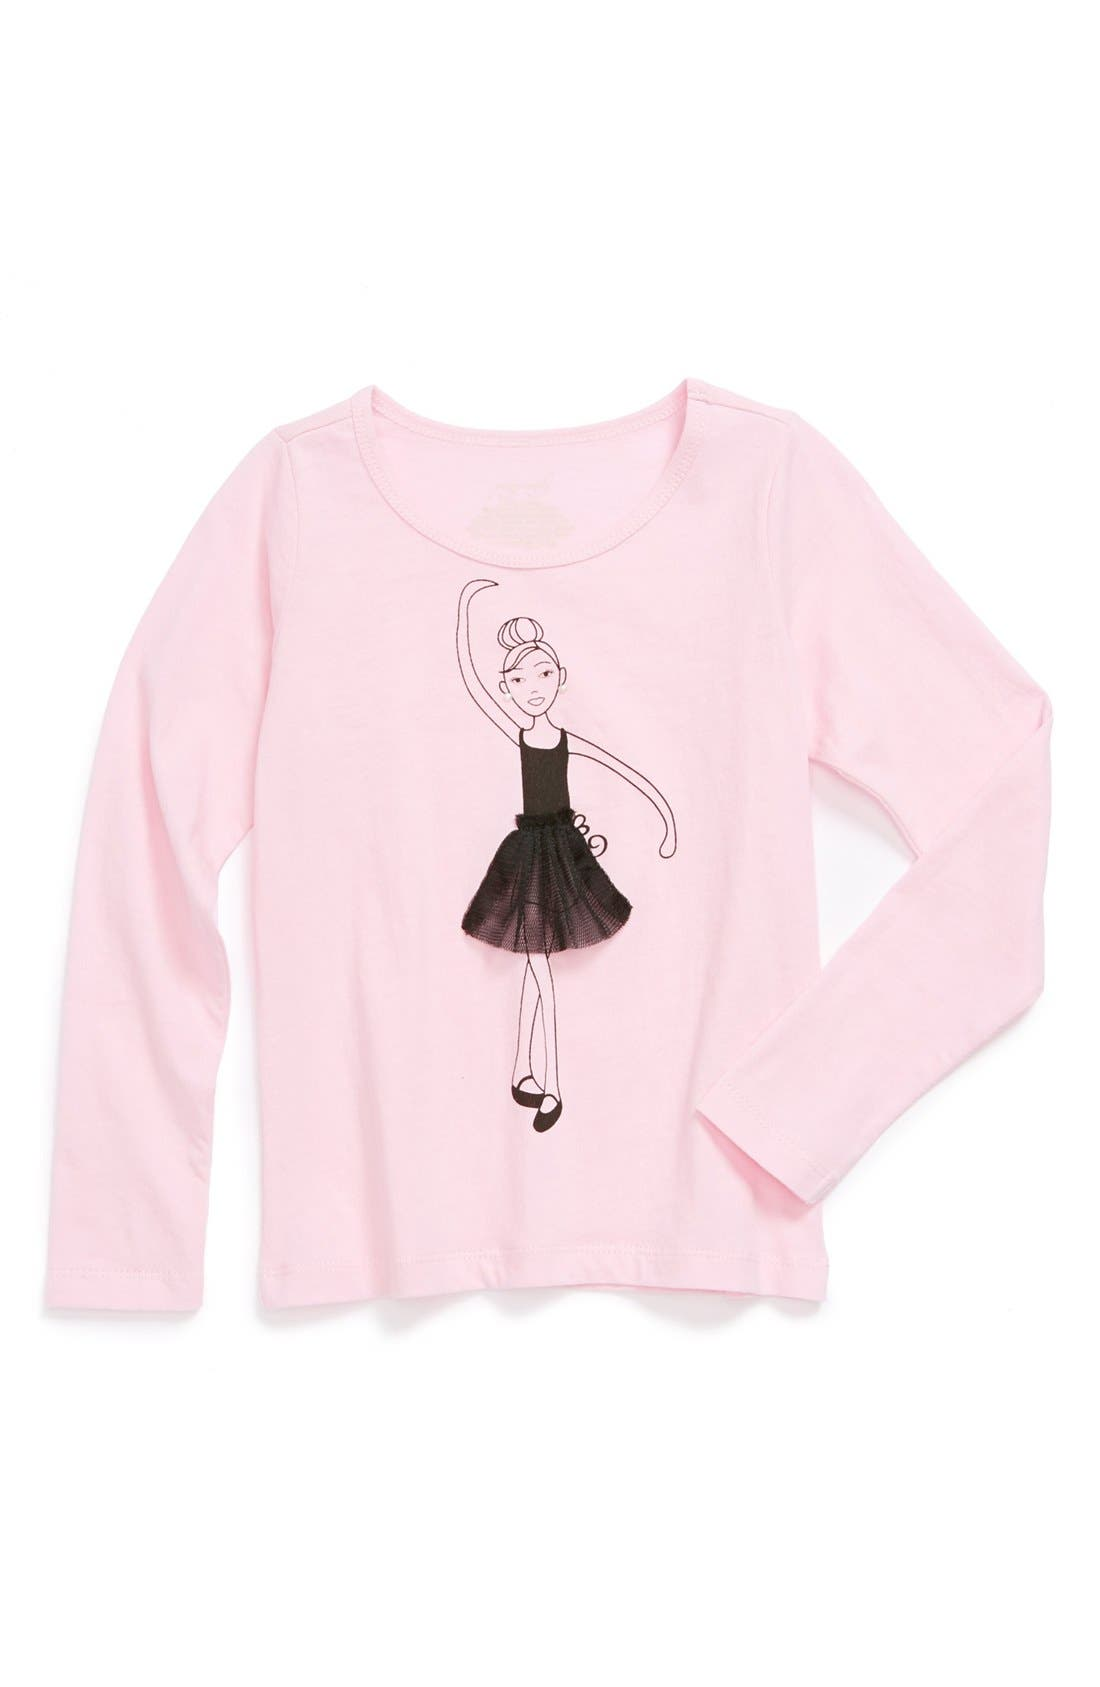 Alternate Image 1 Selected - Penny Candy Graphic Tee (Little Girls & Big Girls)